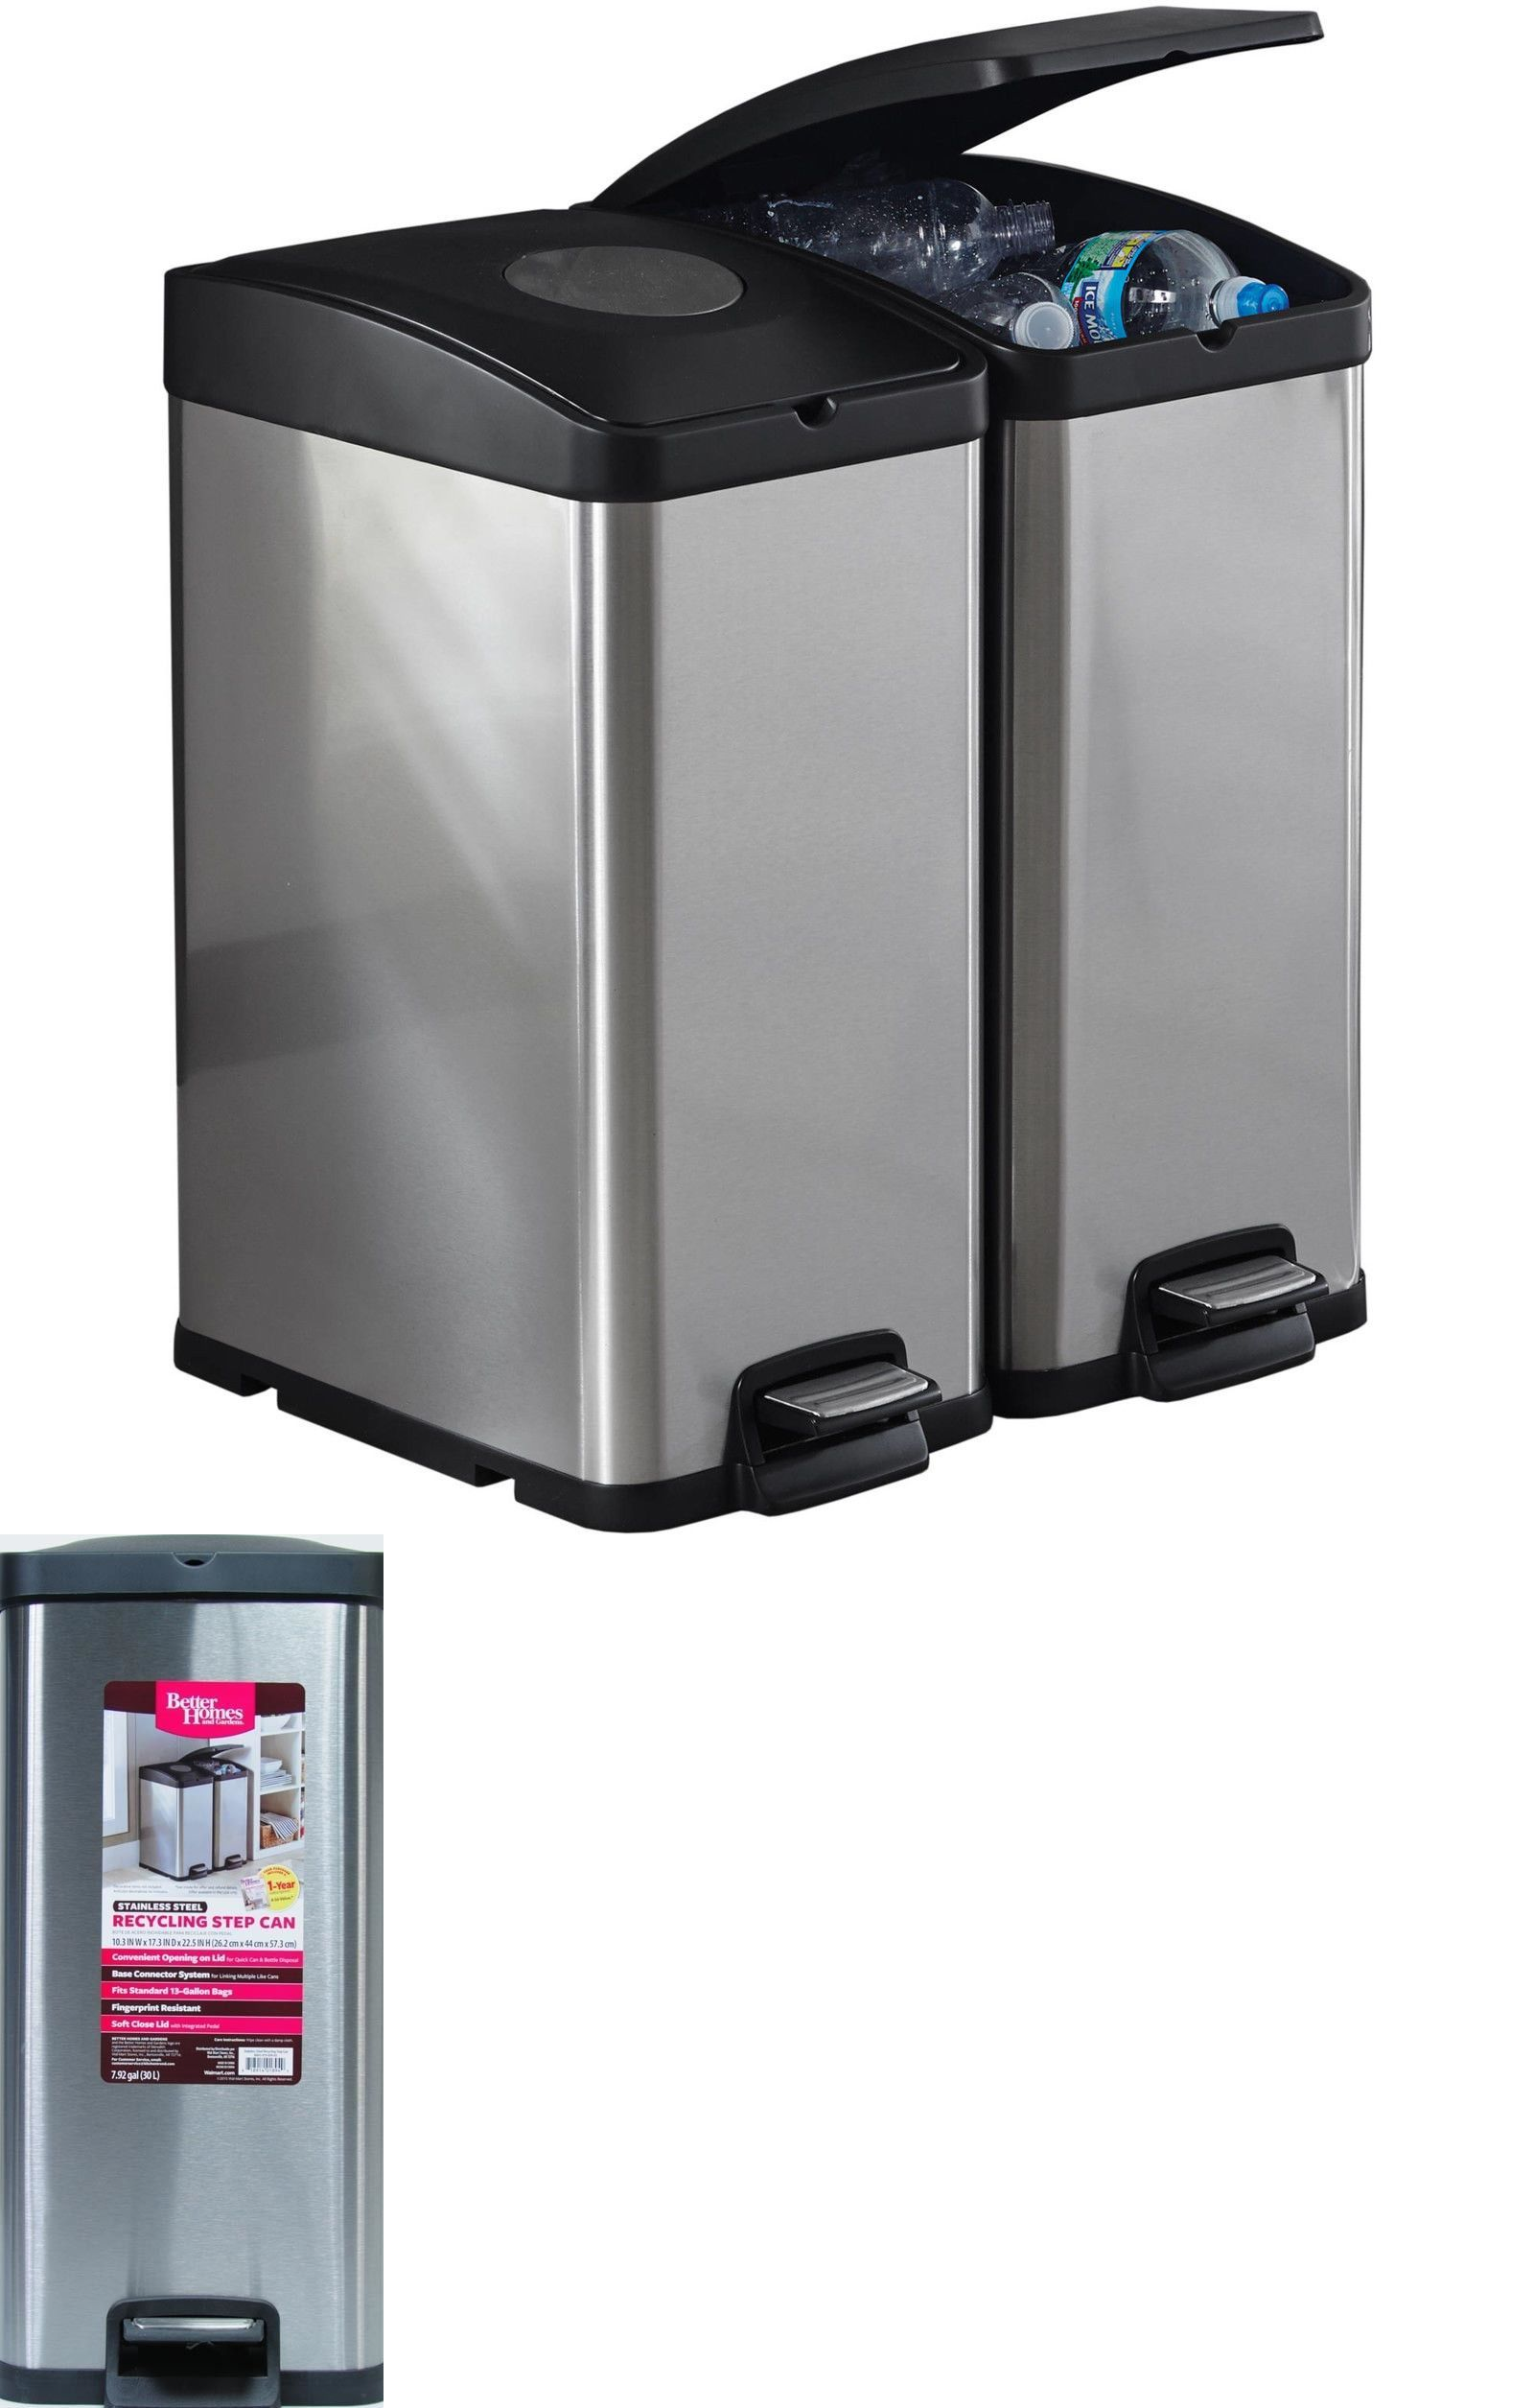 Trash Cans And Wastebaskets Trash Cans And Wastebaskets 20608 Kitchen Recycle Bin 30L Stainless